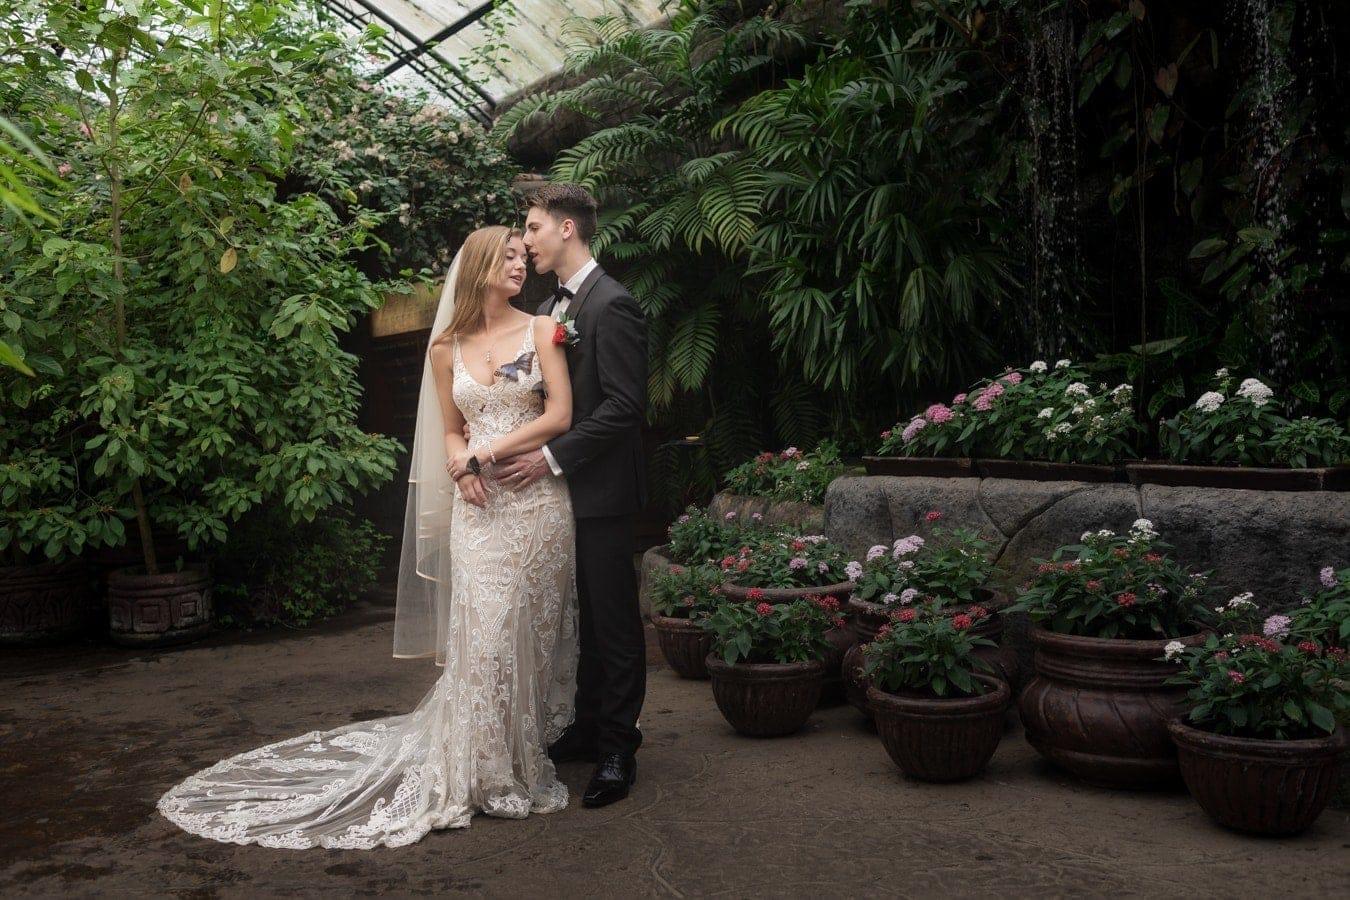 Sierra-Thomas-bride-groom-photos-La-Paz-Waterfall-Gardens-8.jpg